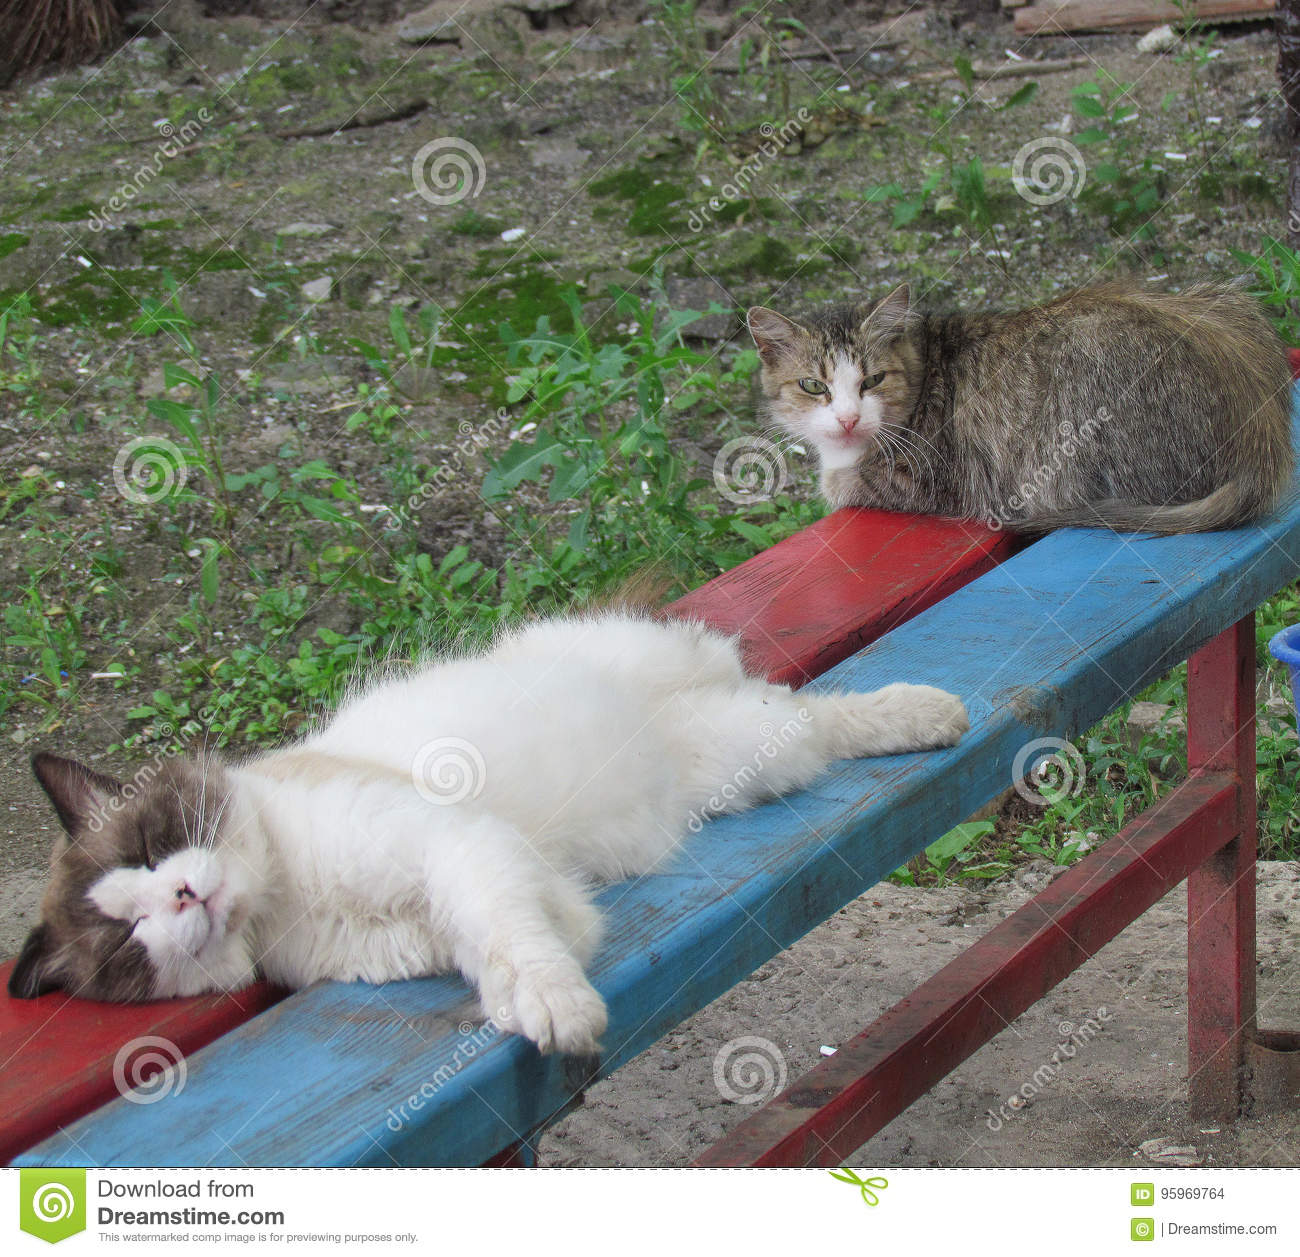 Cats on the bench